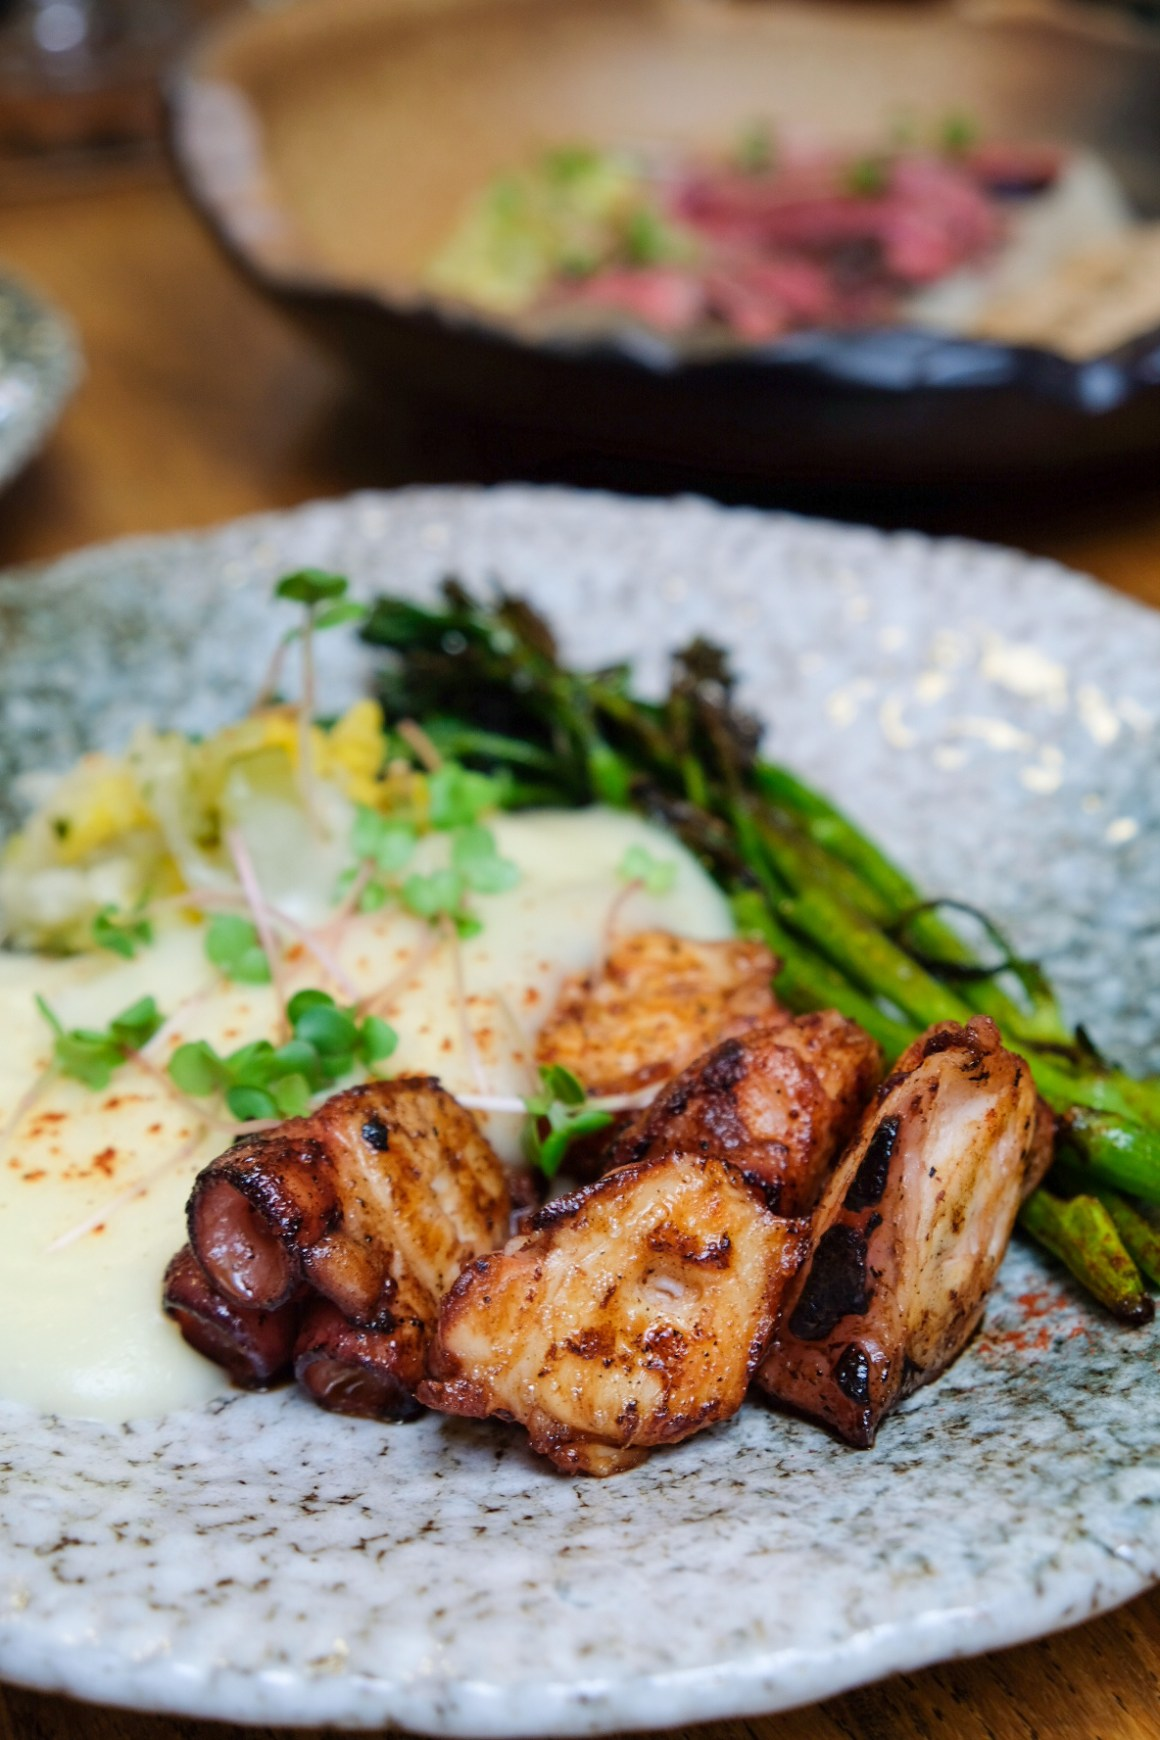 New Menu By Chef Mariana Campos D' Almeida At The Butcher's Wife - Grilled Octopus ($27)